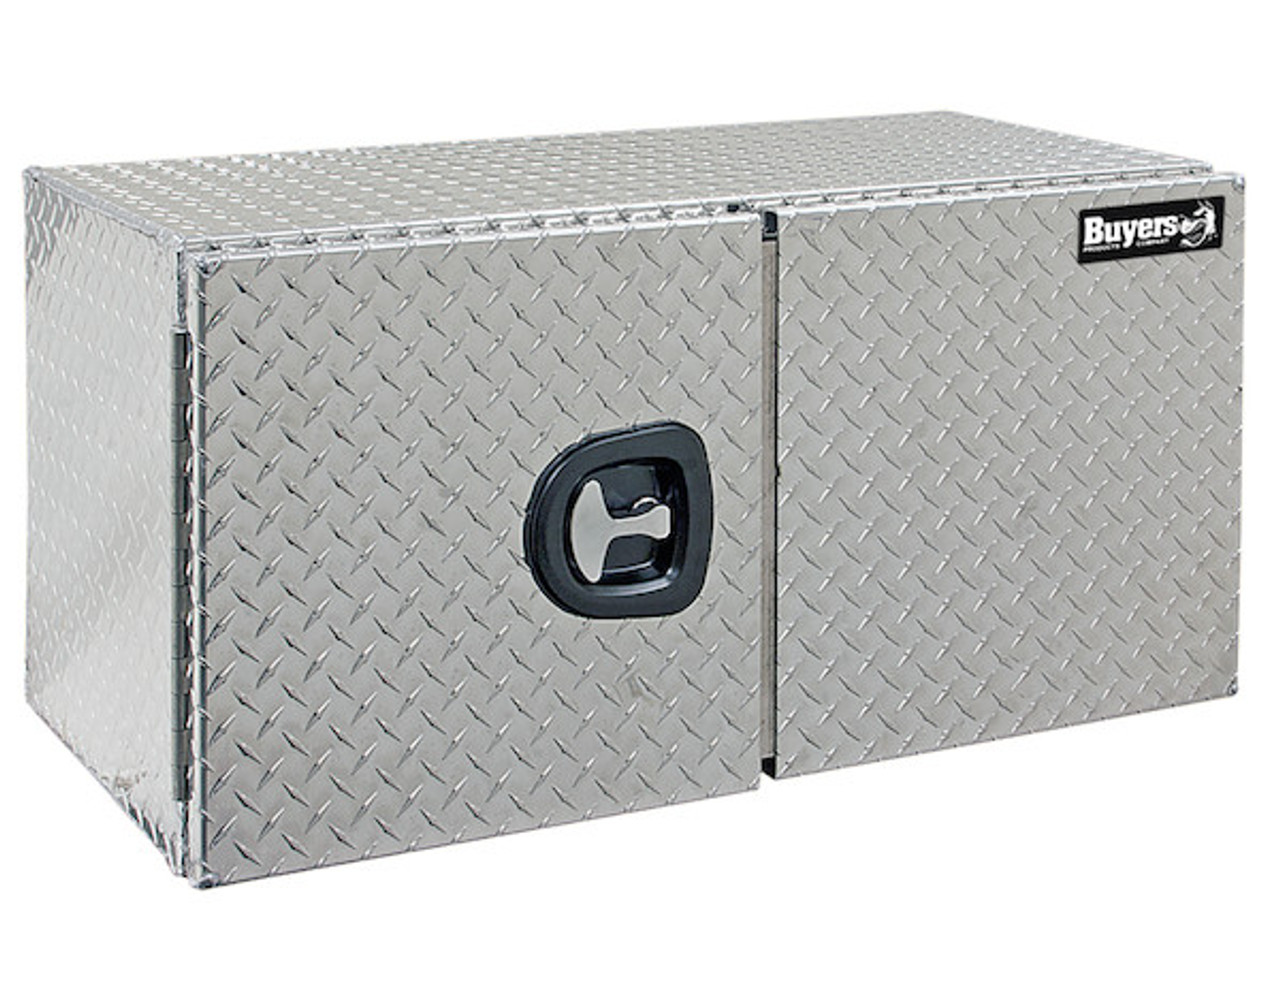 "1705210 BUYERS PRODUCTS DIAMOND TREAD ALUMINUM UNDERBODY TRUCK TOOLBOX WITH BARN DOOR 18""HX18""DX48""W"